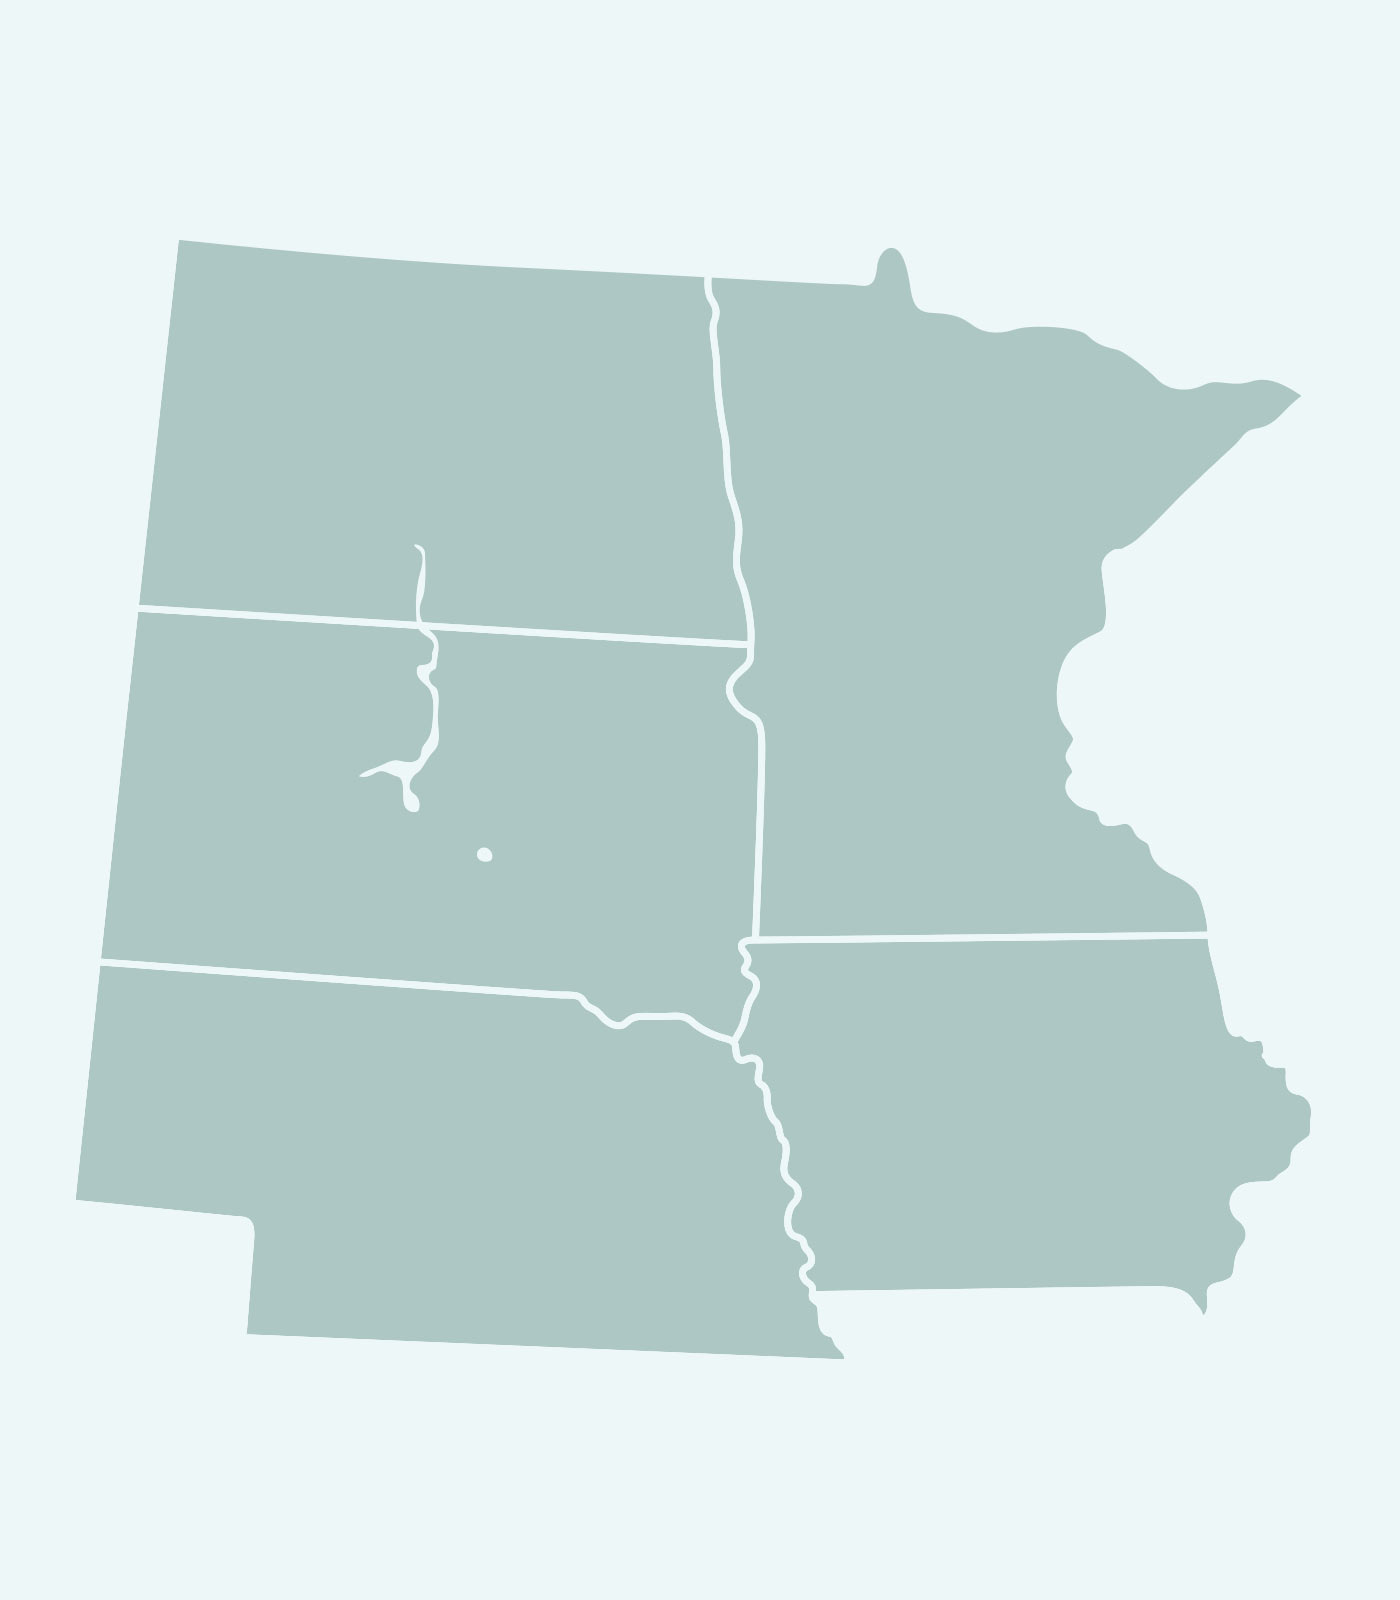 Sales Rep's Map of Minnesota, North Dakota, Nebraska, Iowa, South Dakota for Women's Clothing Line Keren Hart